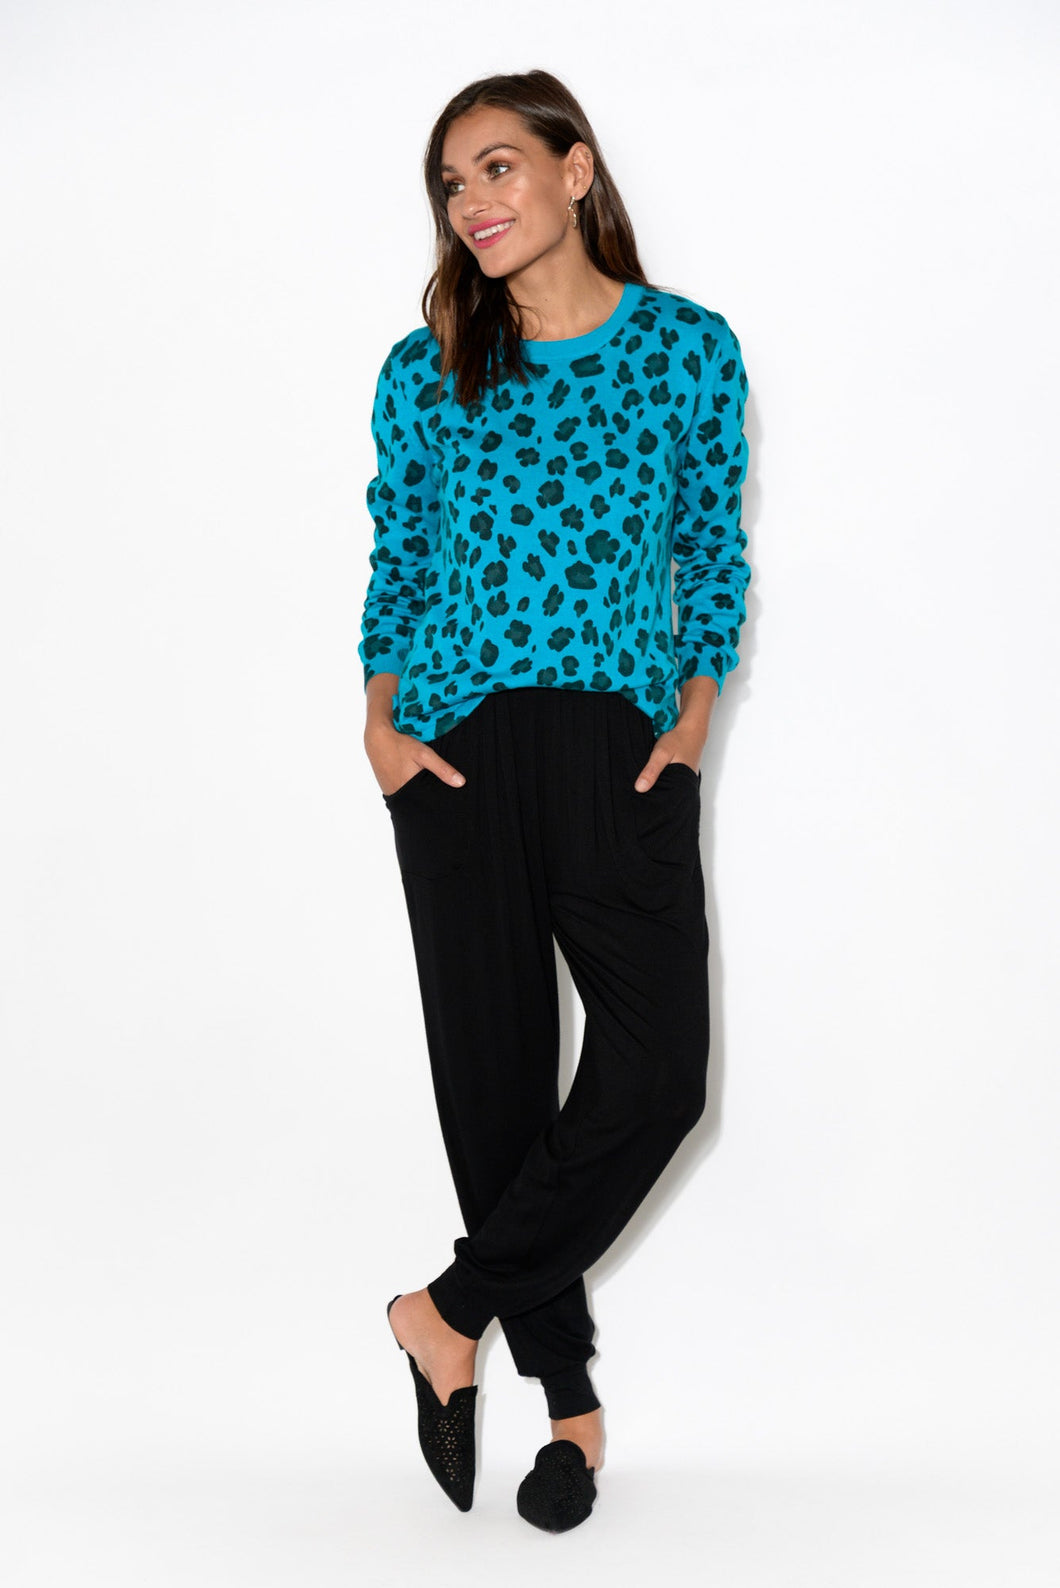 Renee Blue Leopard Jumper